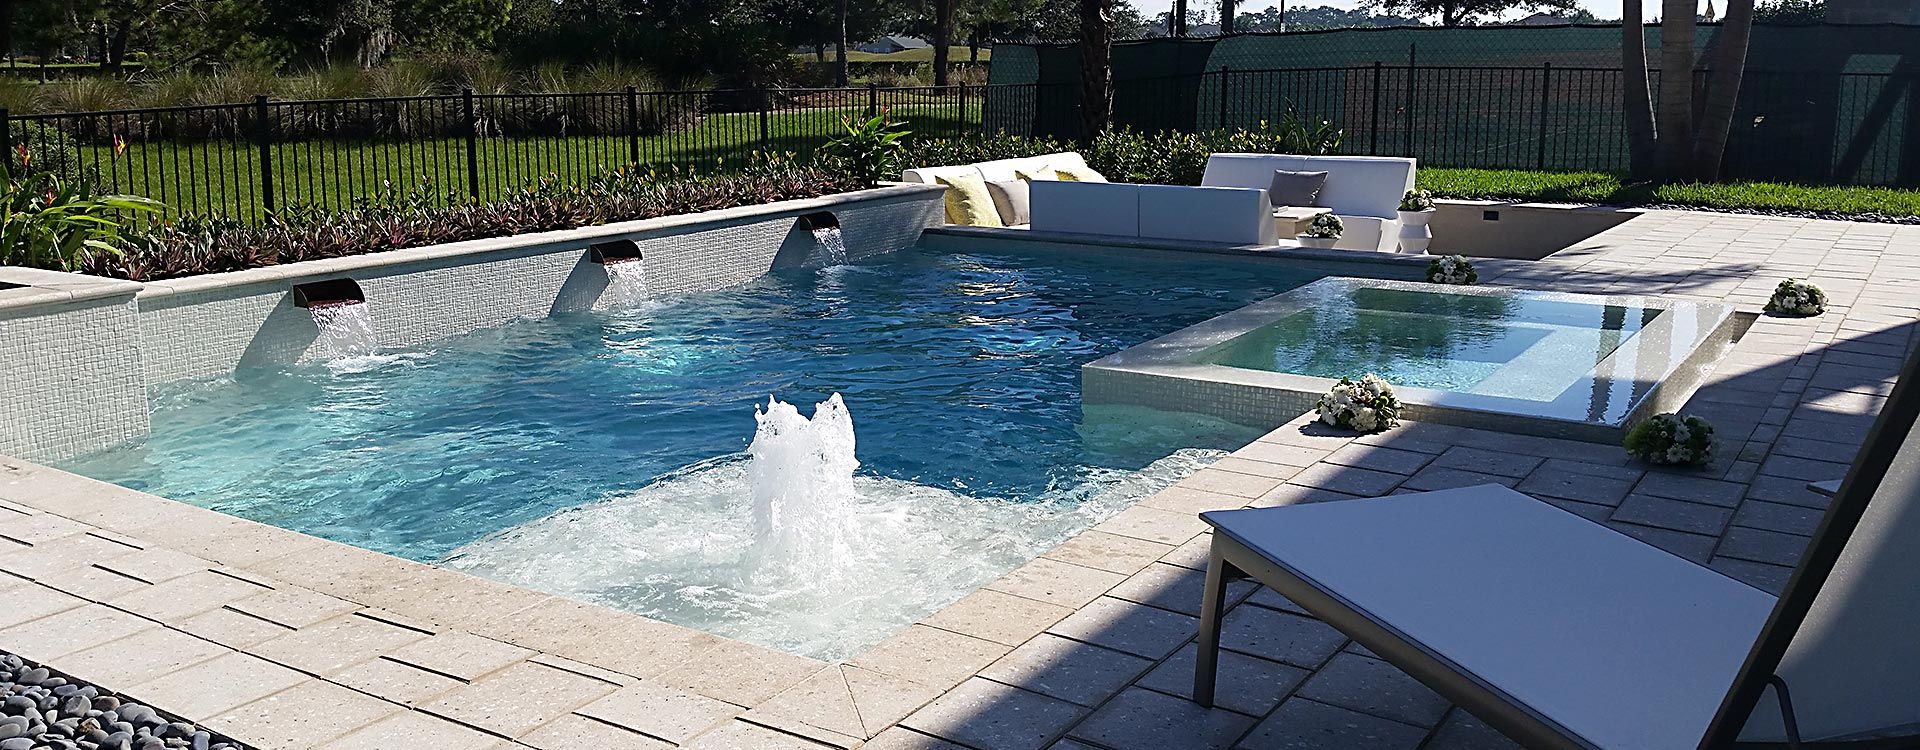 Pool Builders Orlando, Florida - American Pools & Spas